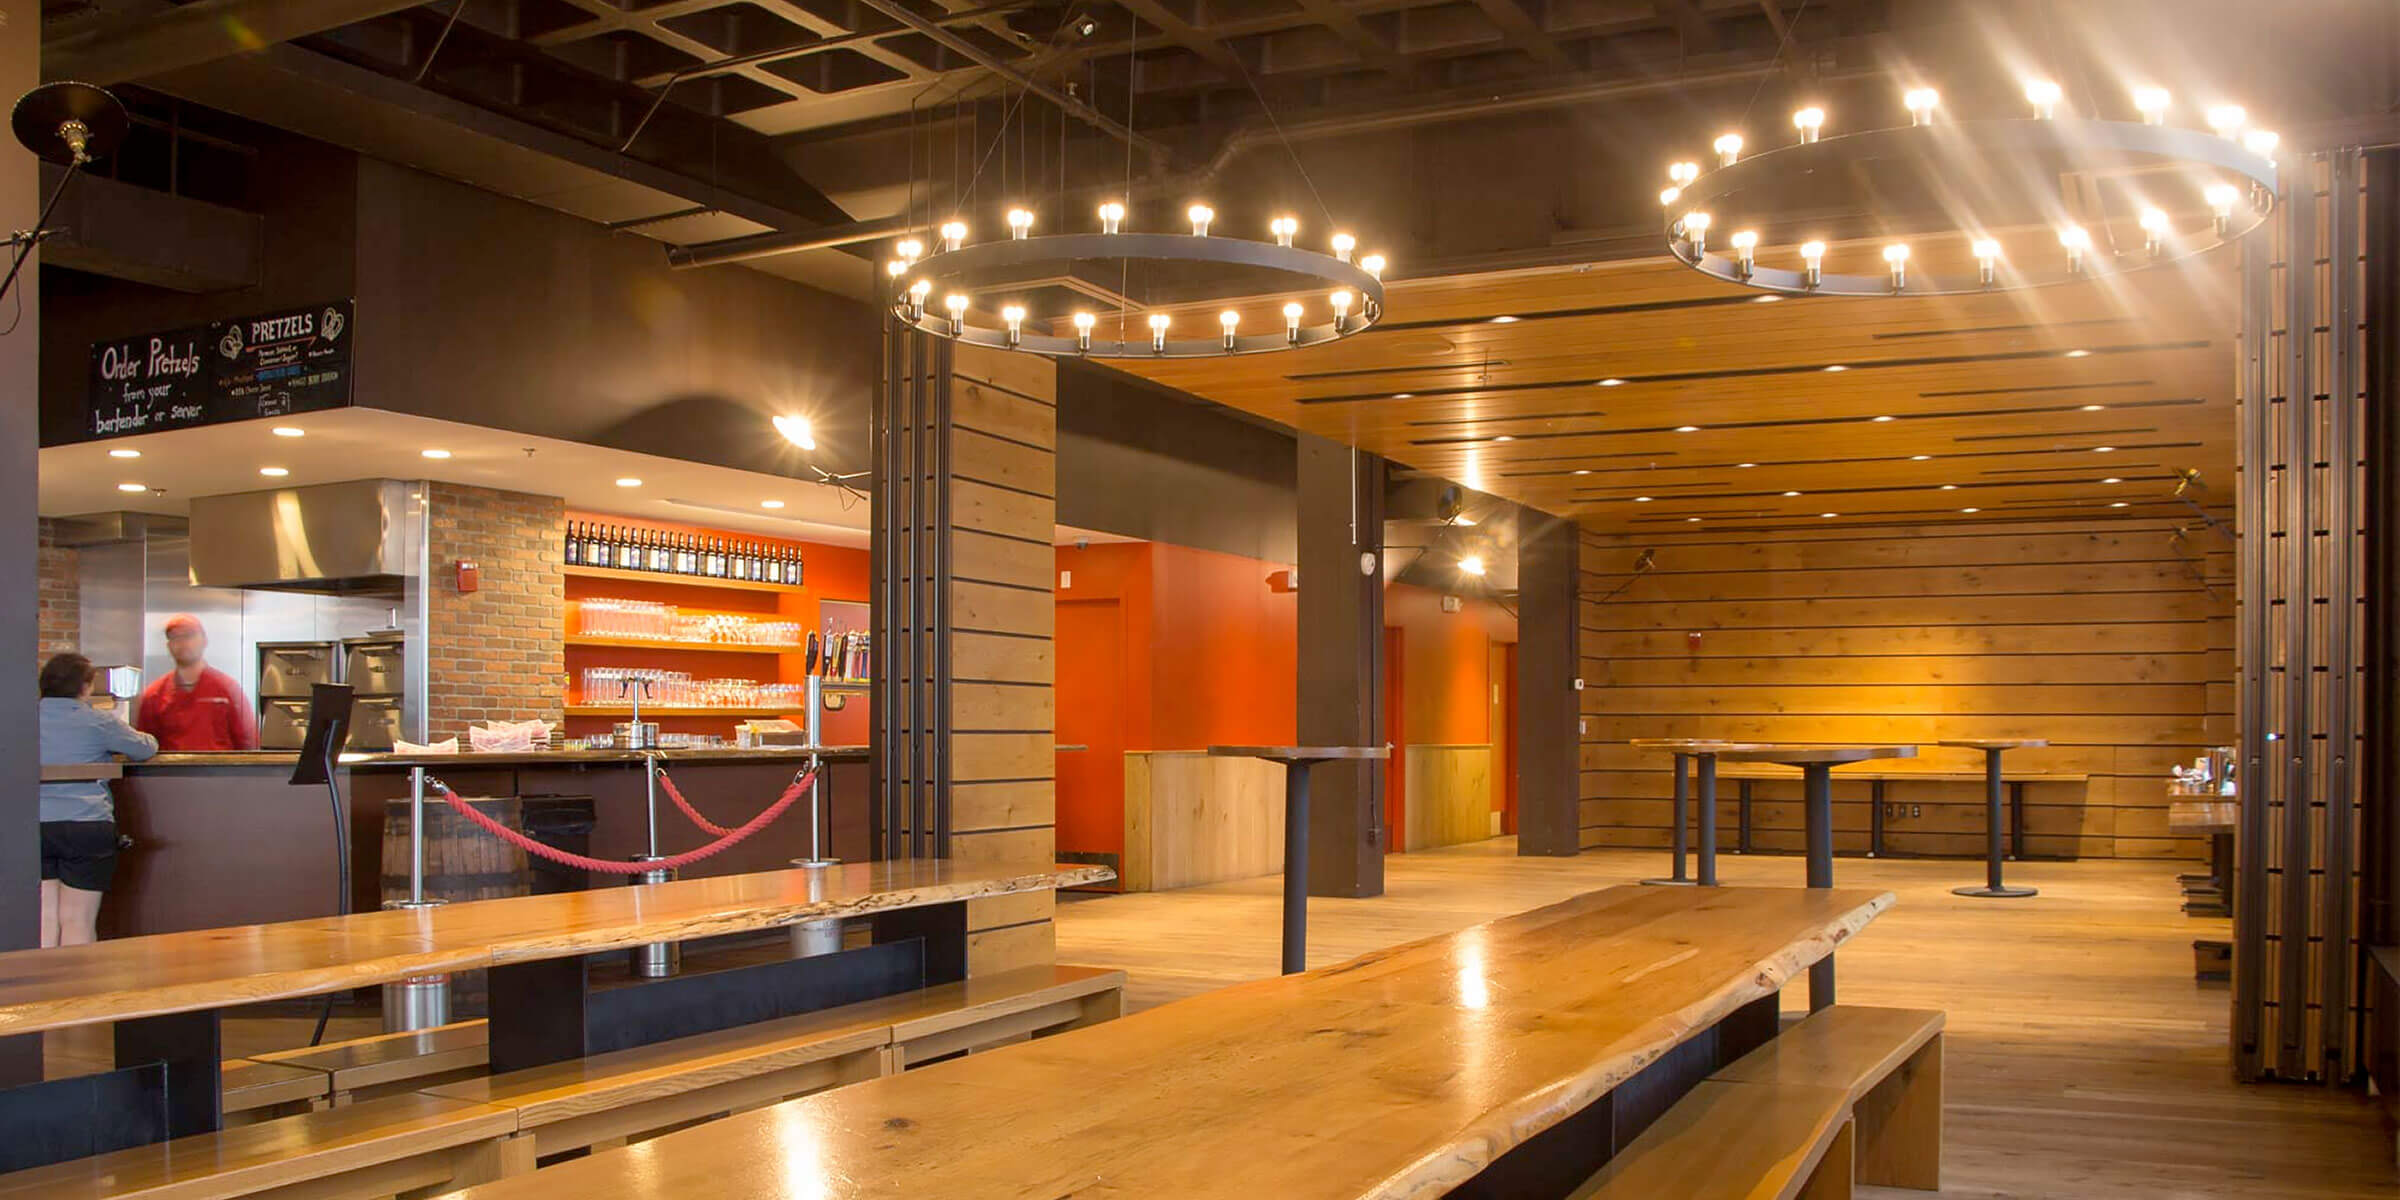 Inside the Harpoon Brewery taproom at the company's Beer Hall in Boston, Massachusetts